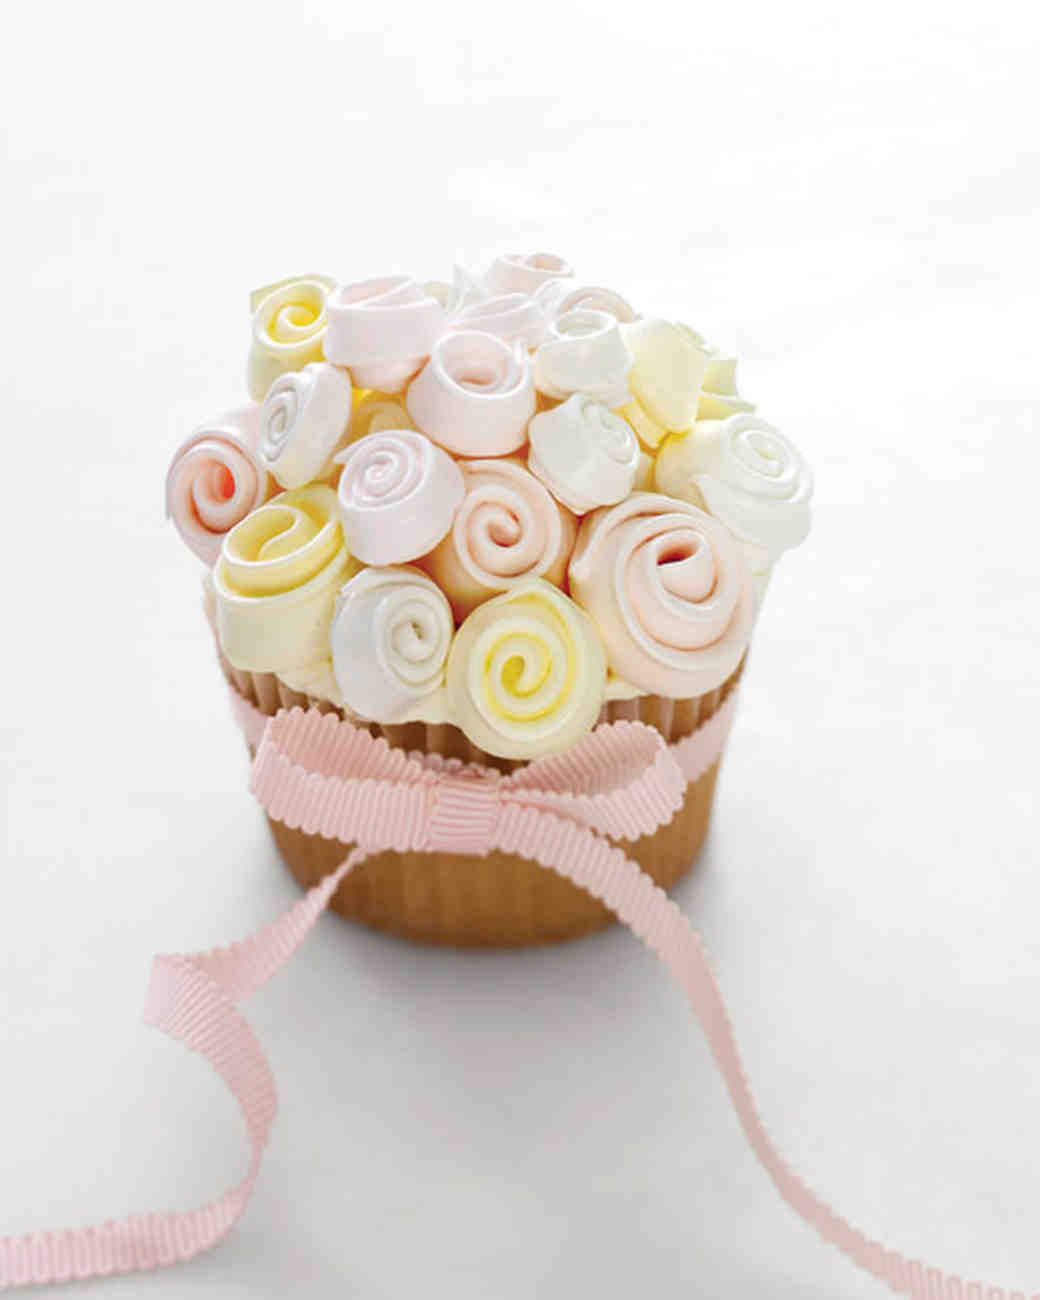 Swiss Meringue Buttercream for Meringue Bouquet Cupcakes